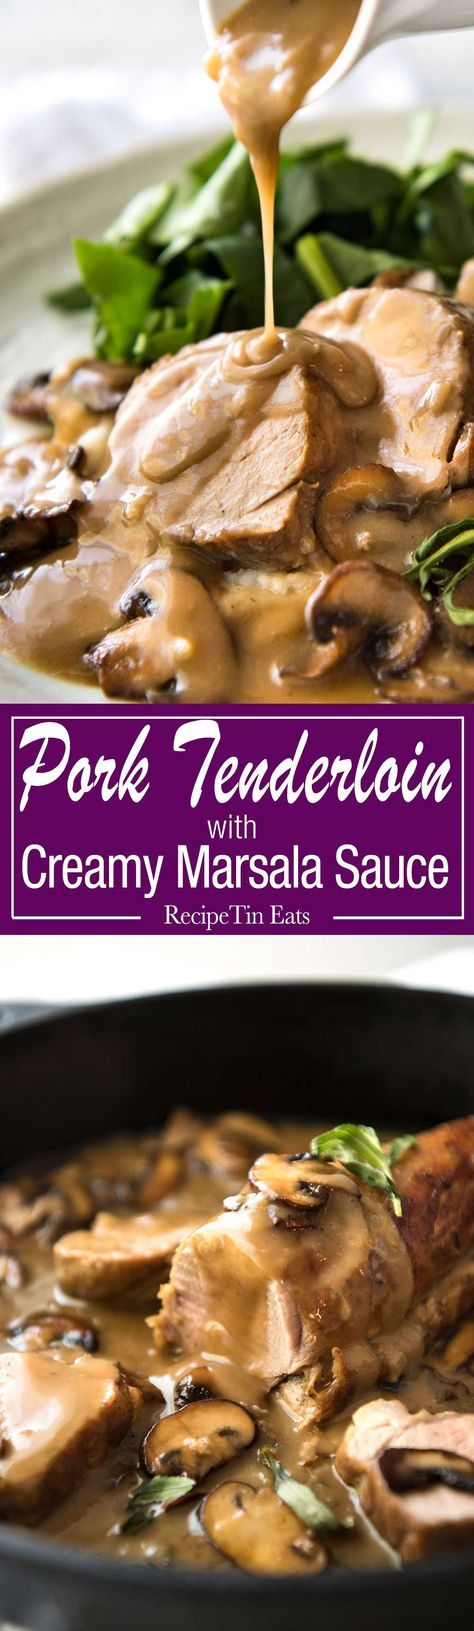 Pork Tenderloin served with a Creamy Marsala Mushroom Sauce - so easy to make, yet impressive enough for company! www.recipetineats.com